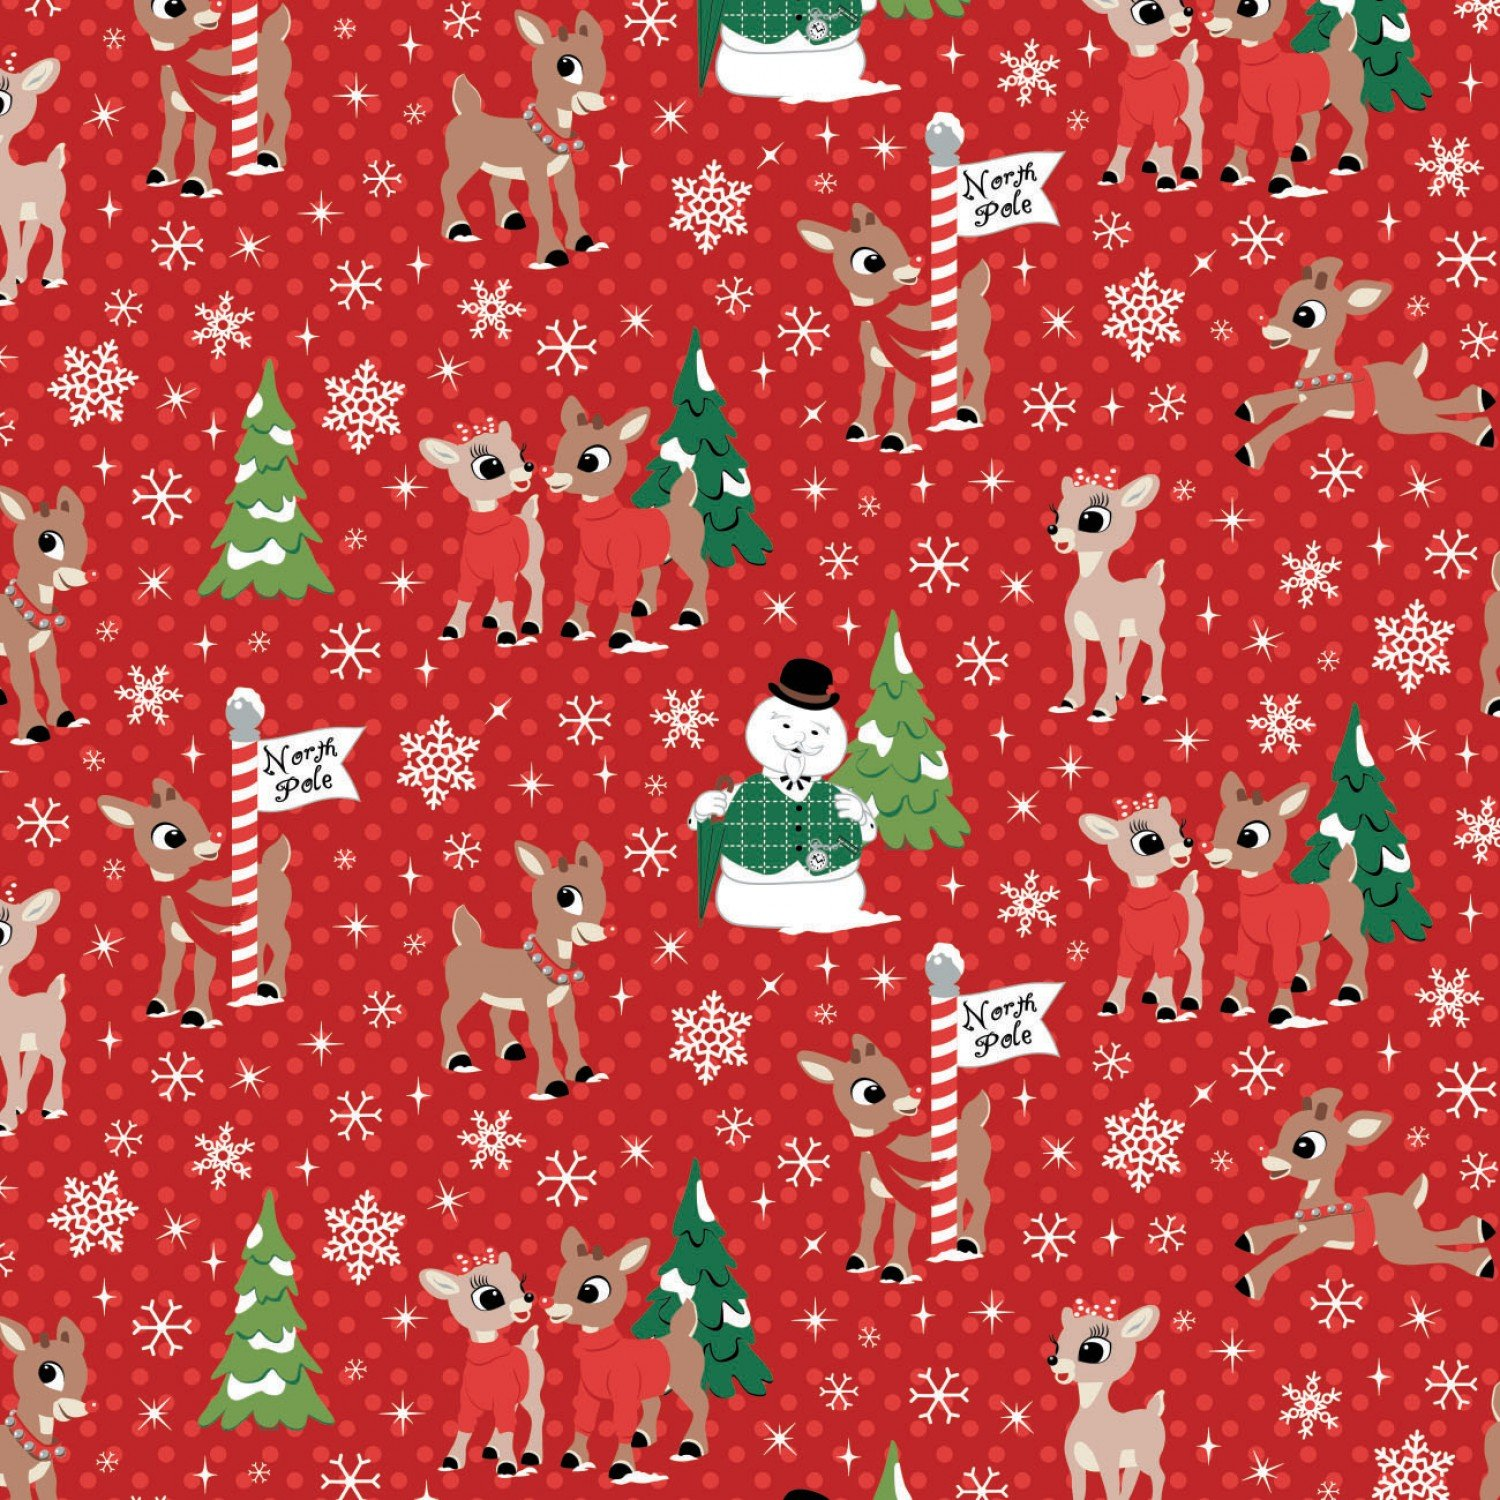 Camelot Character Winter Holiday Collection 62010203 1 Red Christmas Rudoph & Friends North Pole $13.45/yd